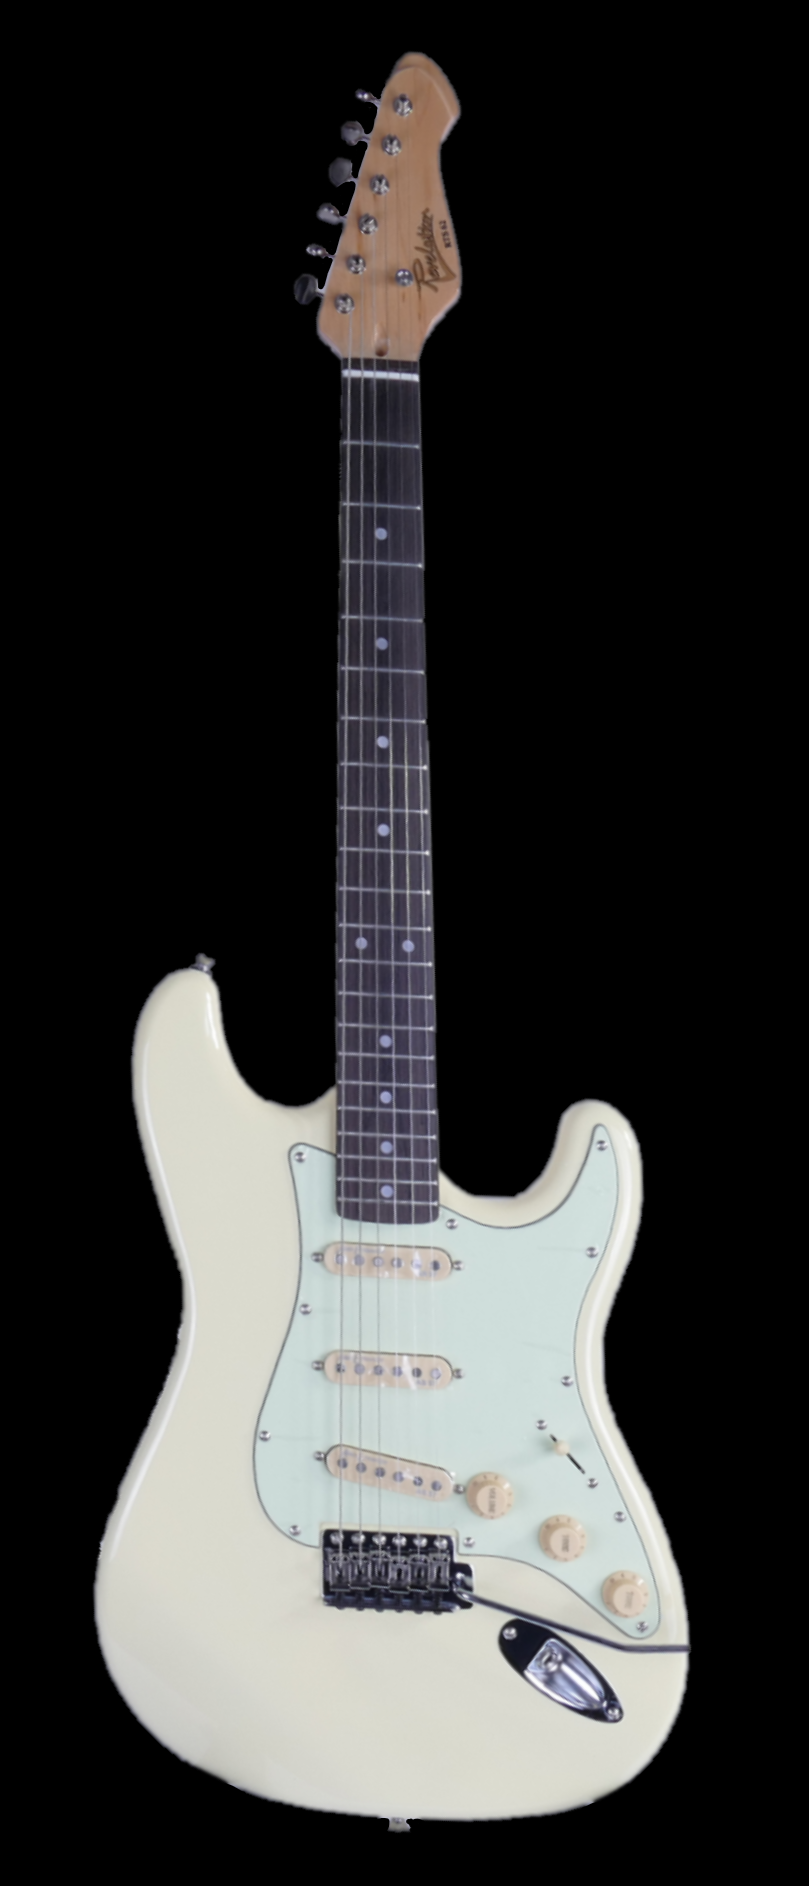 Revelation RTS-62 Electric Guitar in vintage white